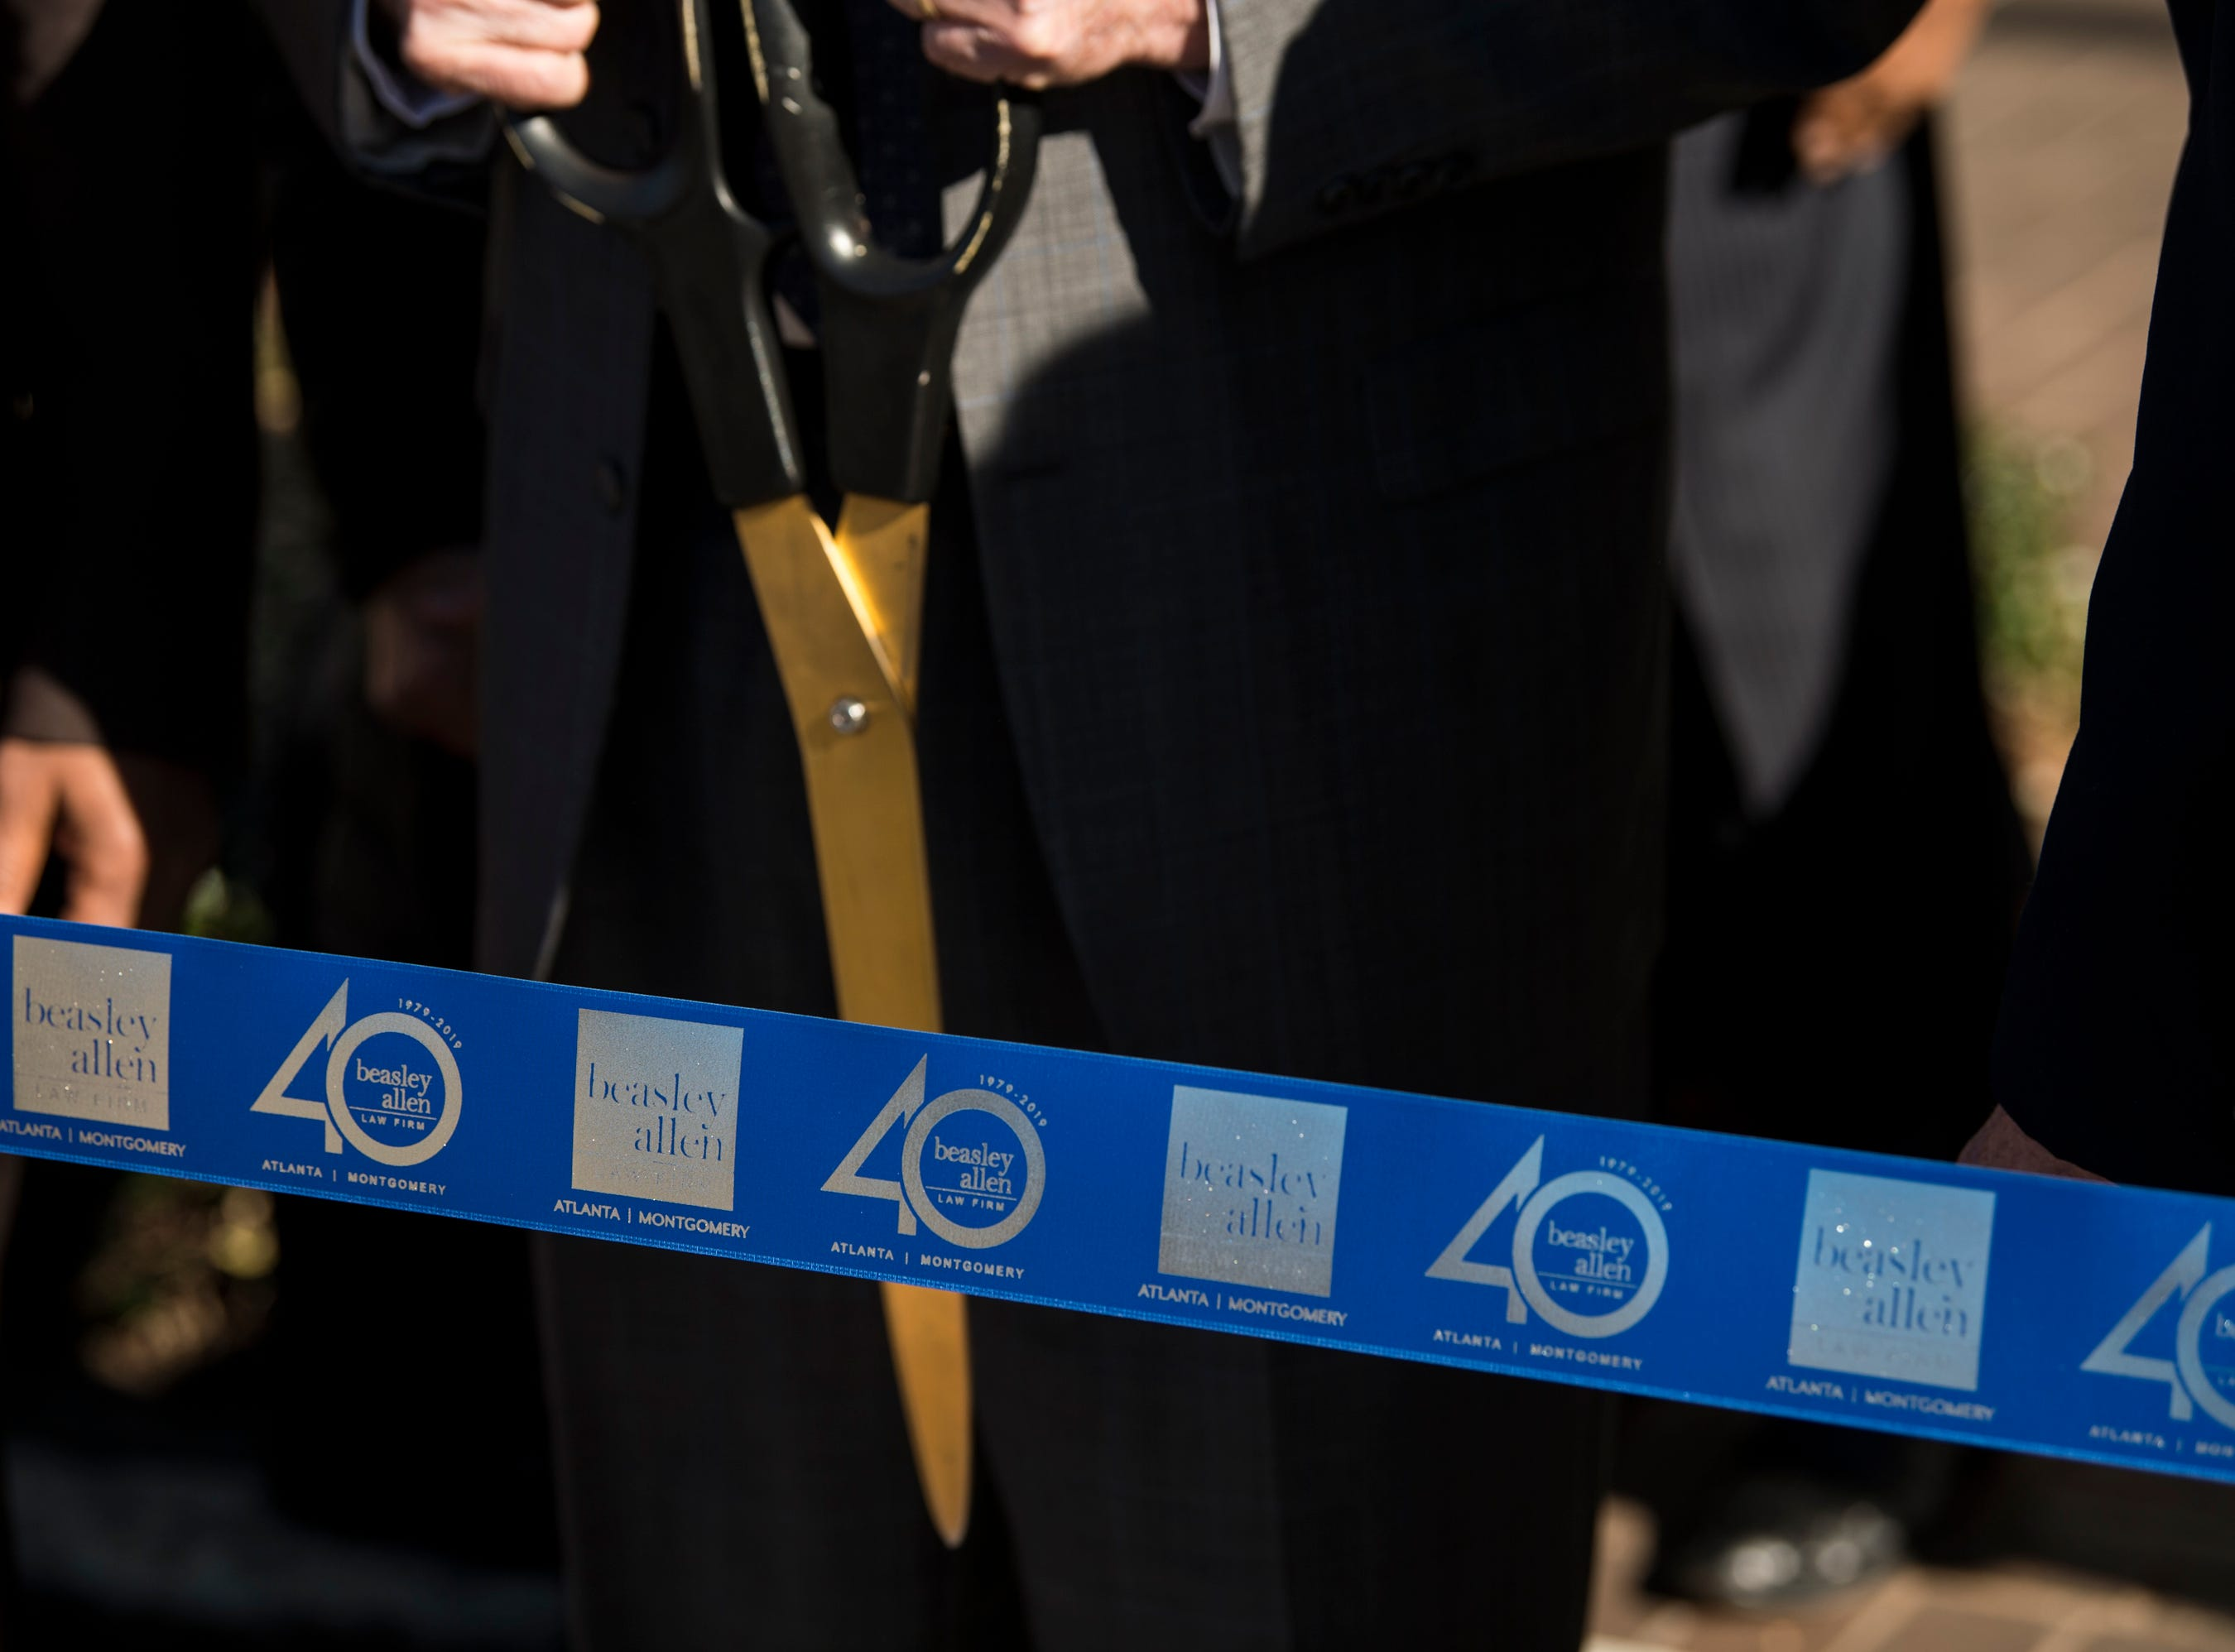 Ribbon is prepared to be cut during the Beasley Allen law firm 40th anniversary celebration in Montgomery, Ala., on Wednesday, Jan. 9, 2019.